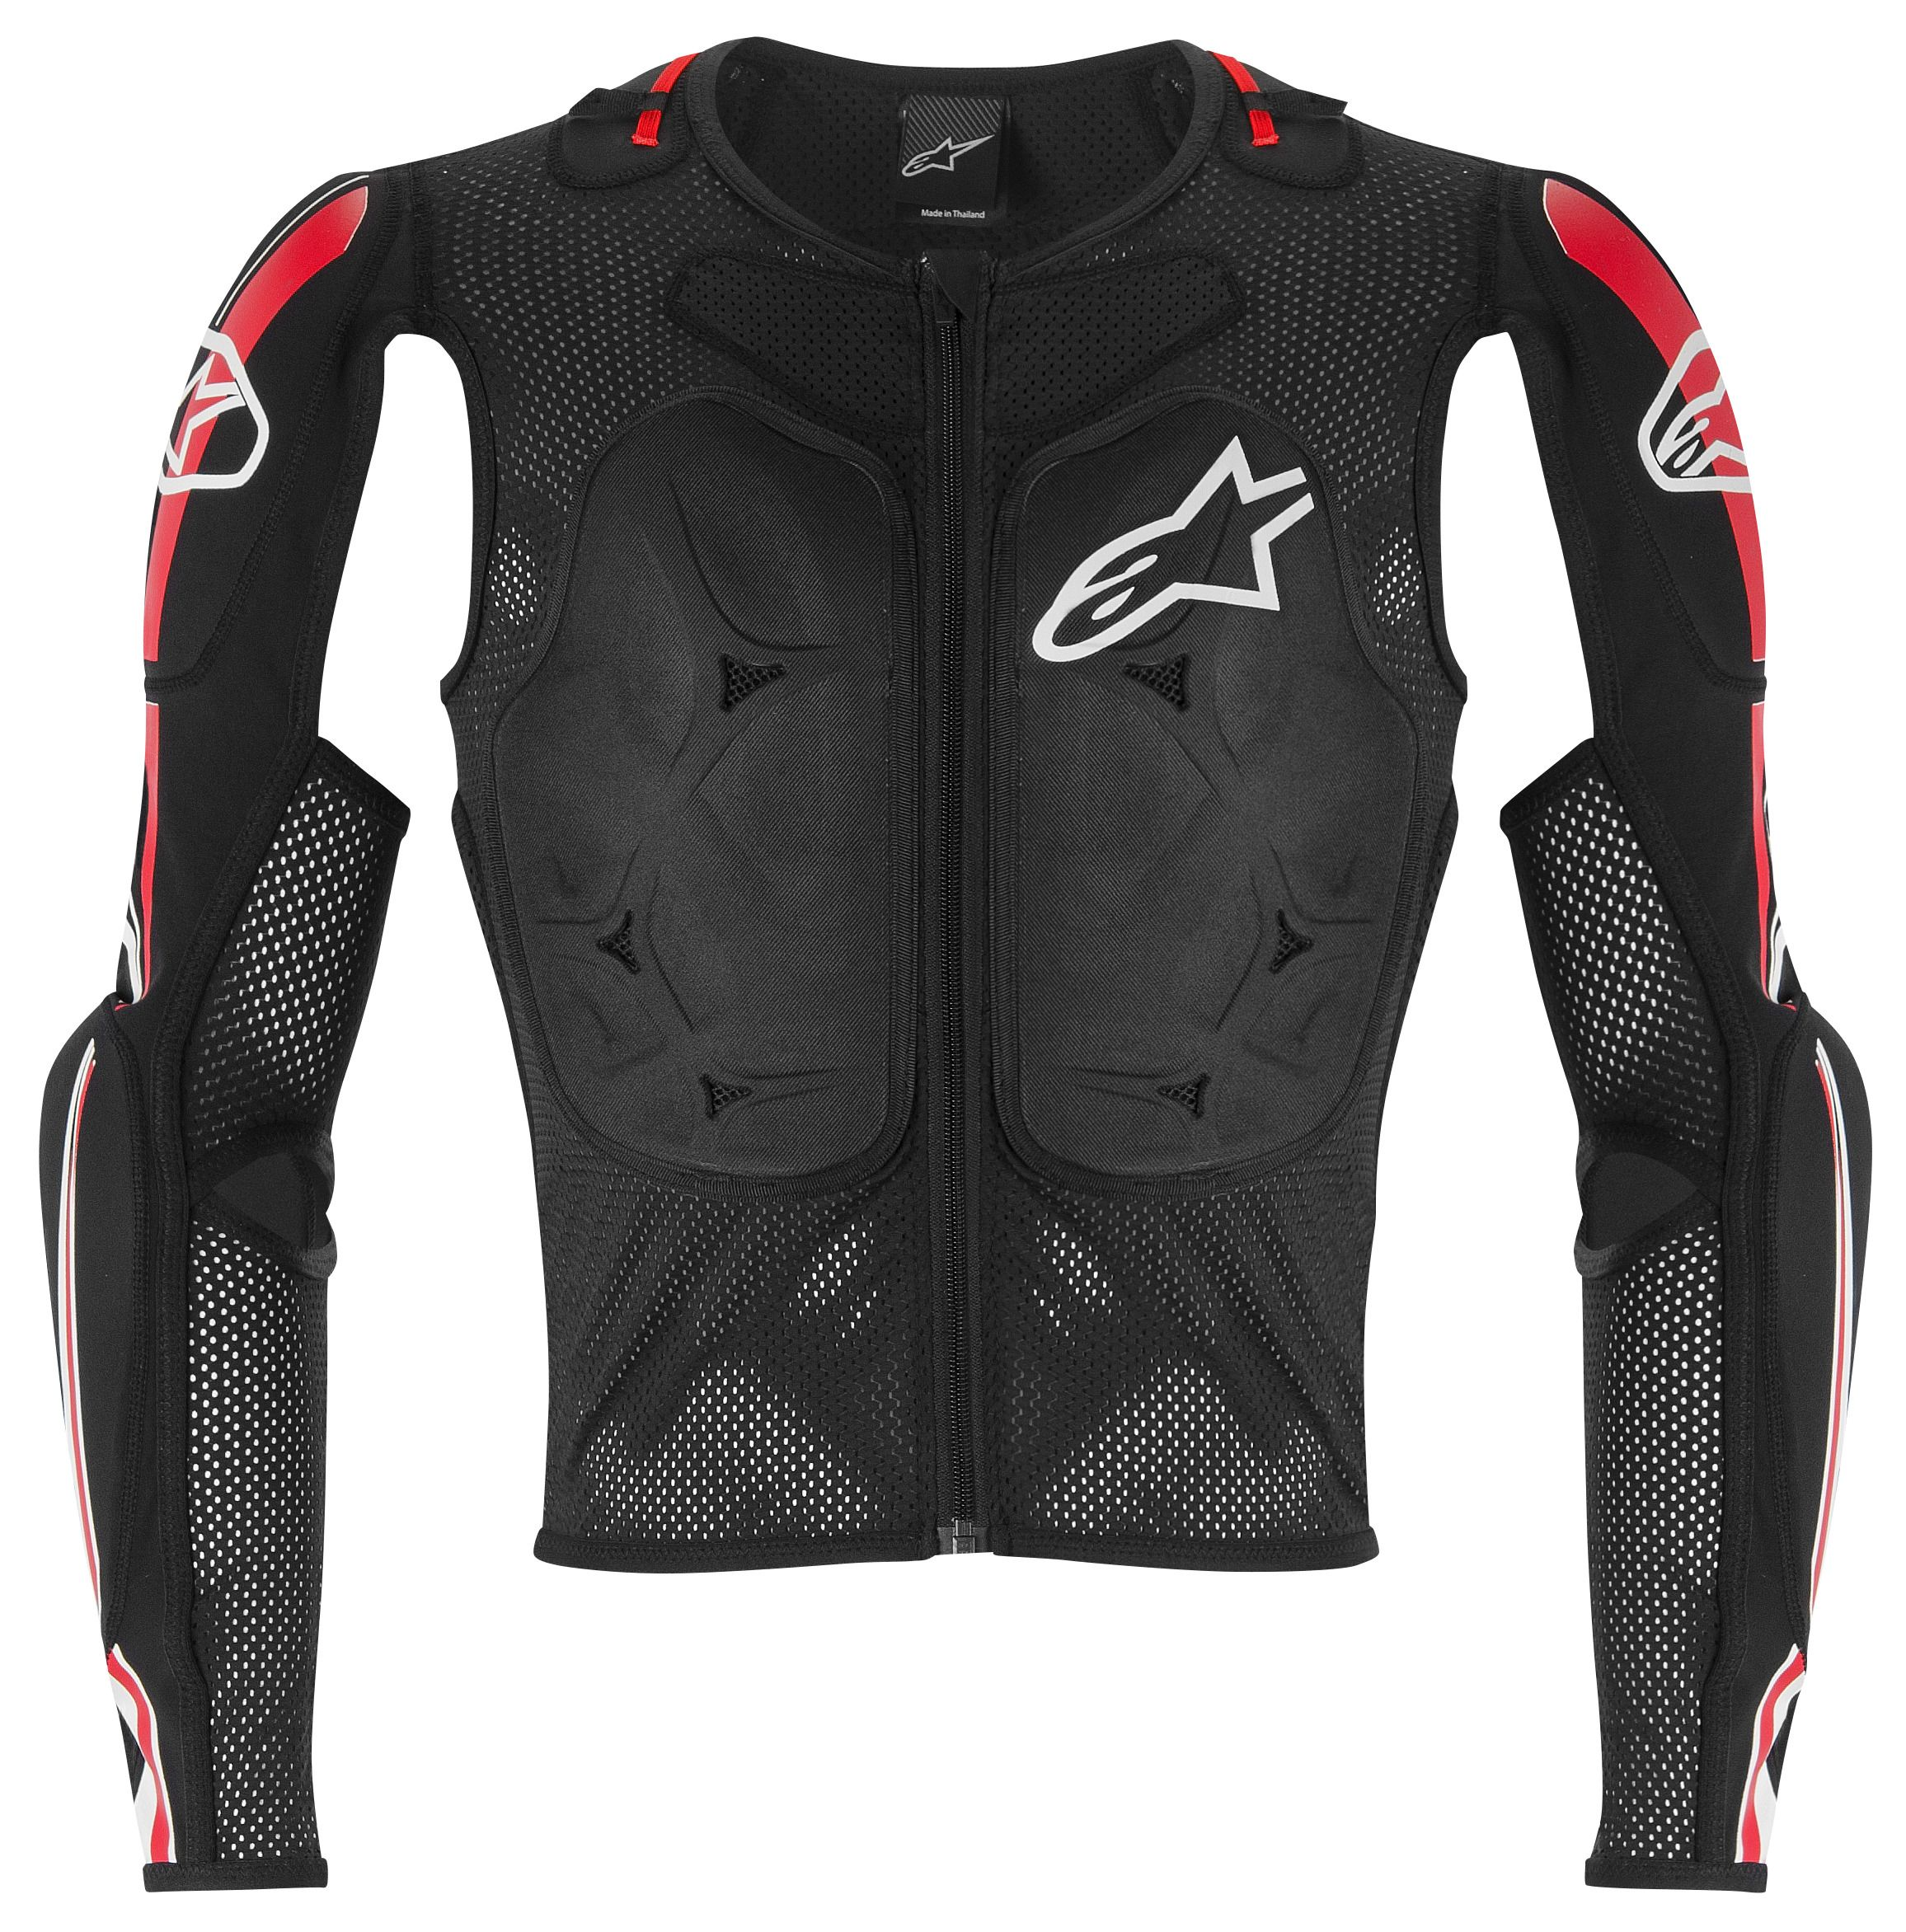 Alpine Motorcycle Gear >> Alpinestars Bionic Pro Jacket (Size 2XL Only) - RevZilla